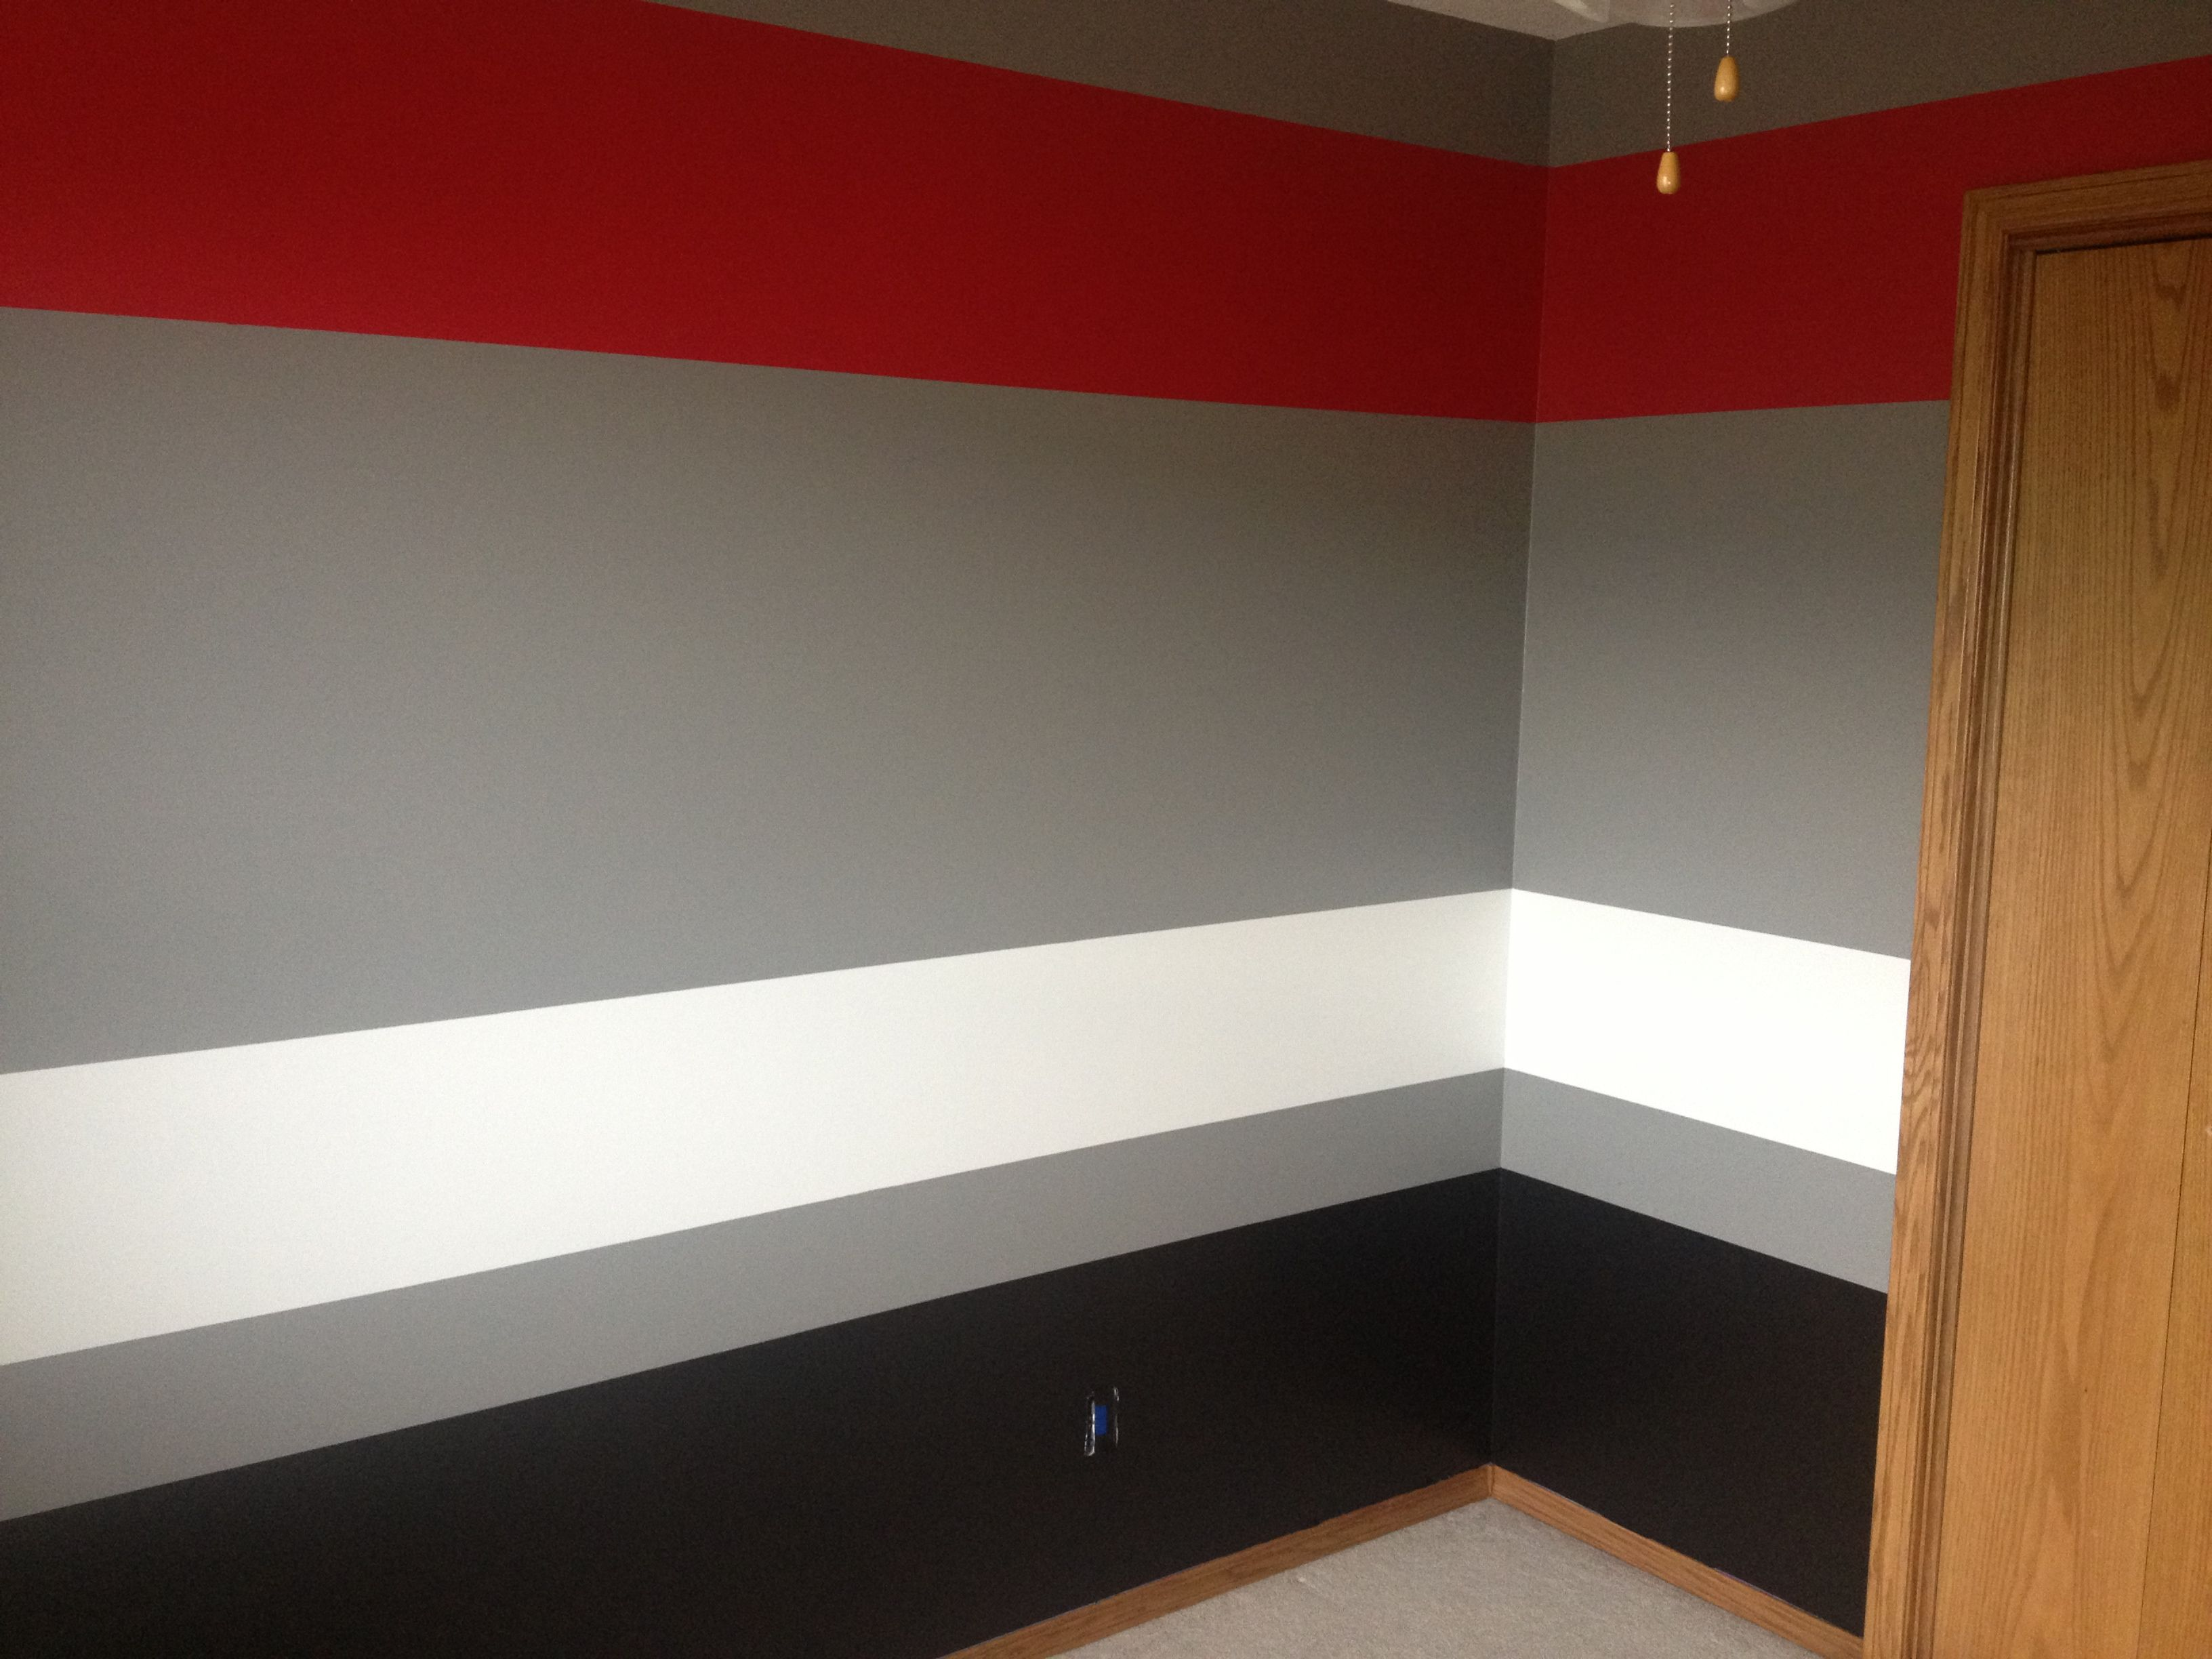 Painted Room Grey Red White Black Rooms Pinterest